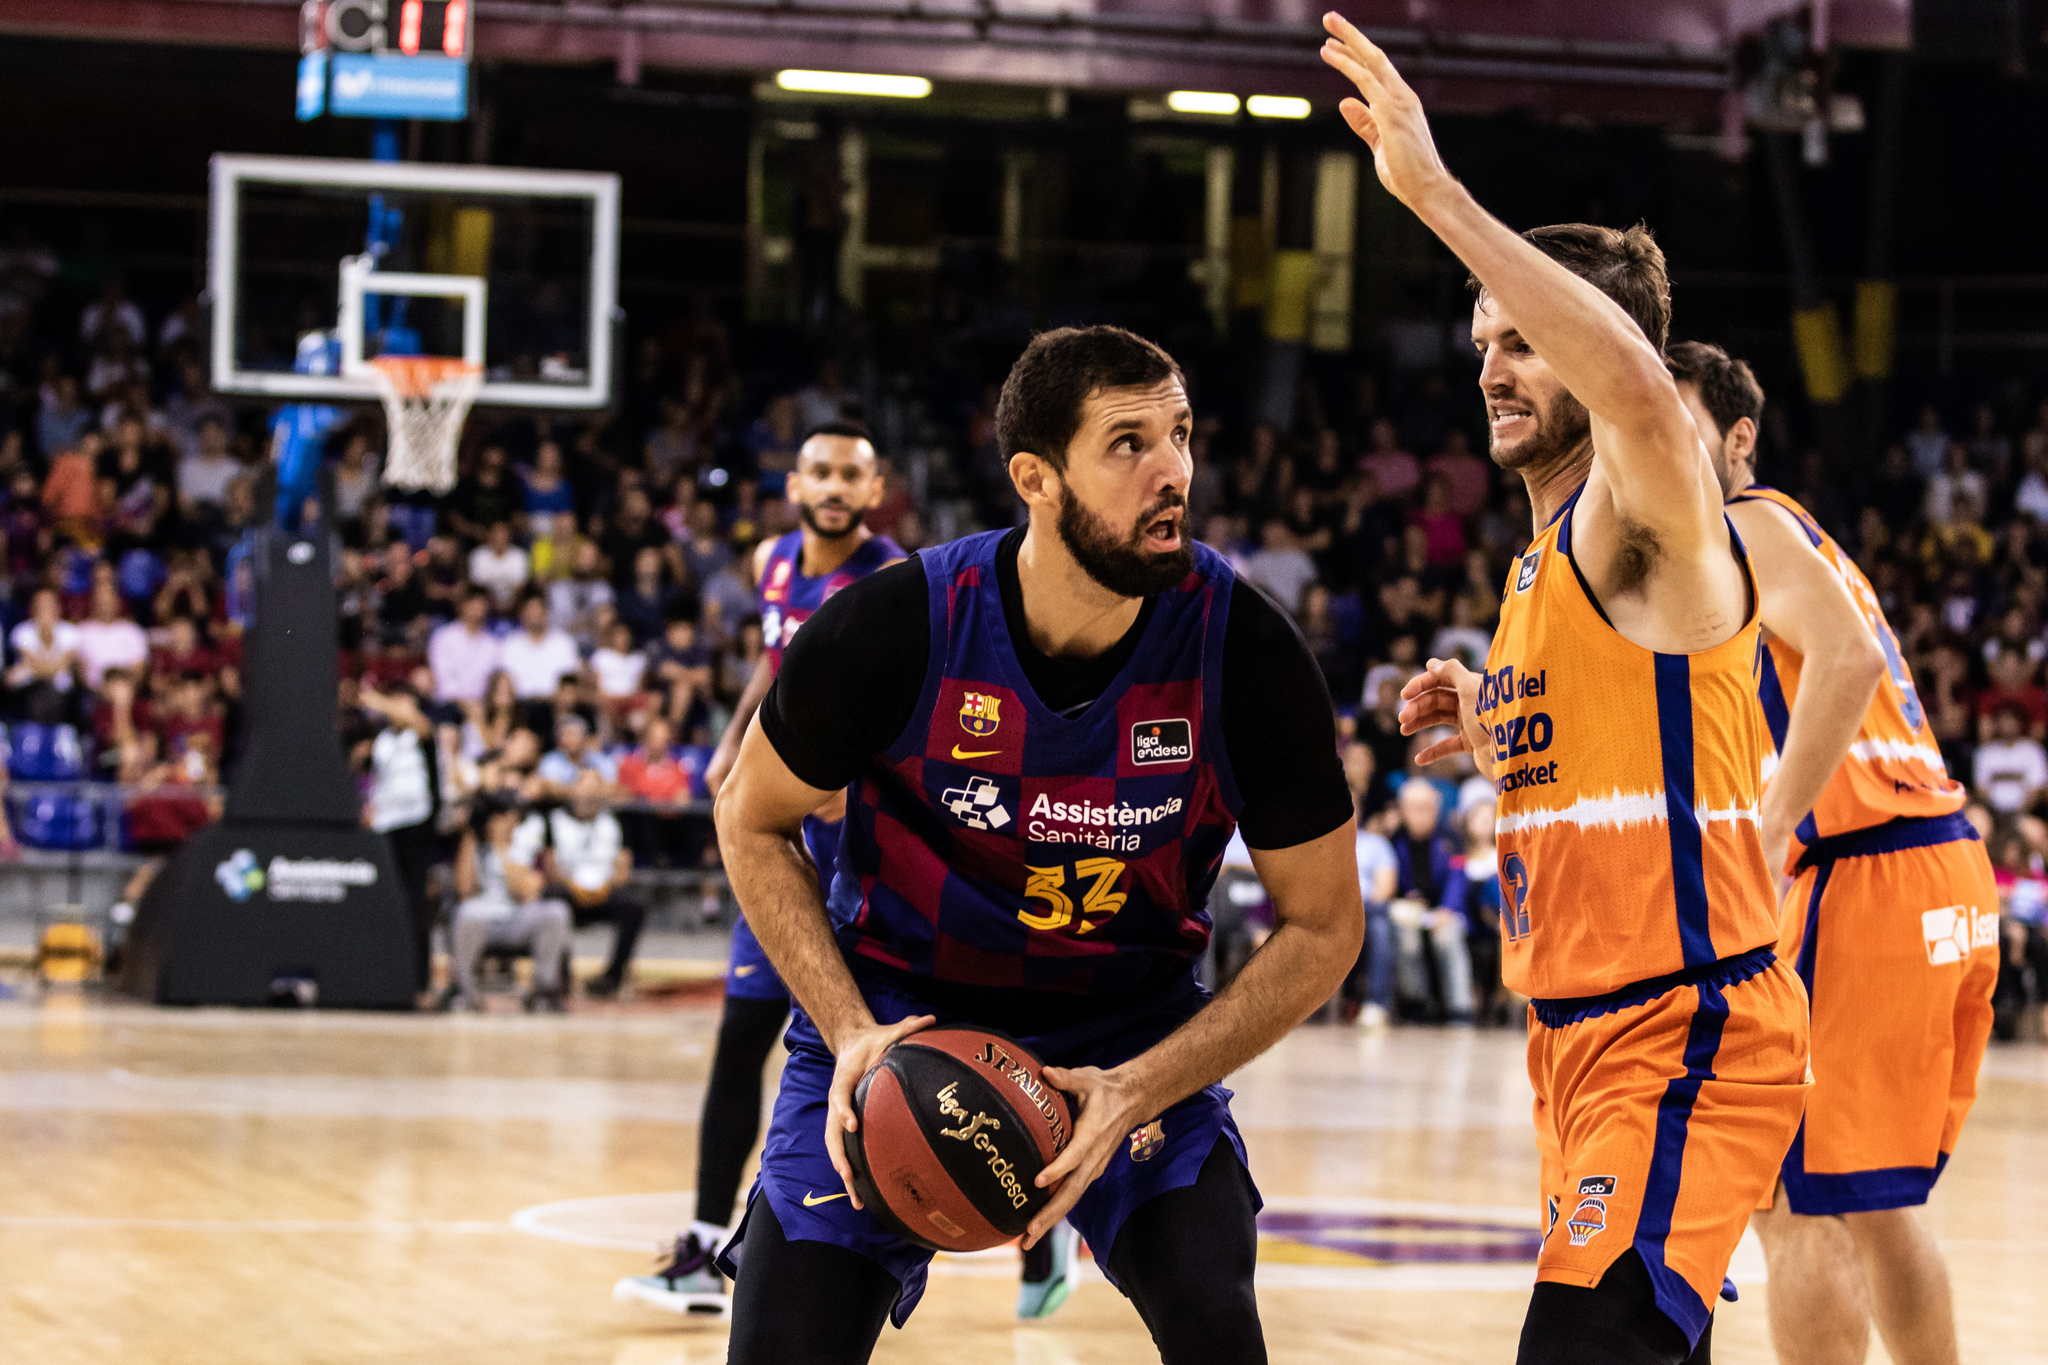 Nikola <HIT>Mirotic</HIT>, #33 ofFc Barcelona in action during the Liga Endesa match between FC Barcelona and Valencia Basket at Palau Blaugrana, in Barcelona, Spain, on October 13, 2019. 13/10/2019 ONLY FOR USE IN SPAIN